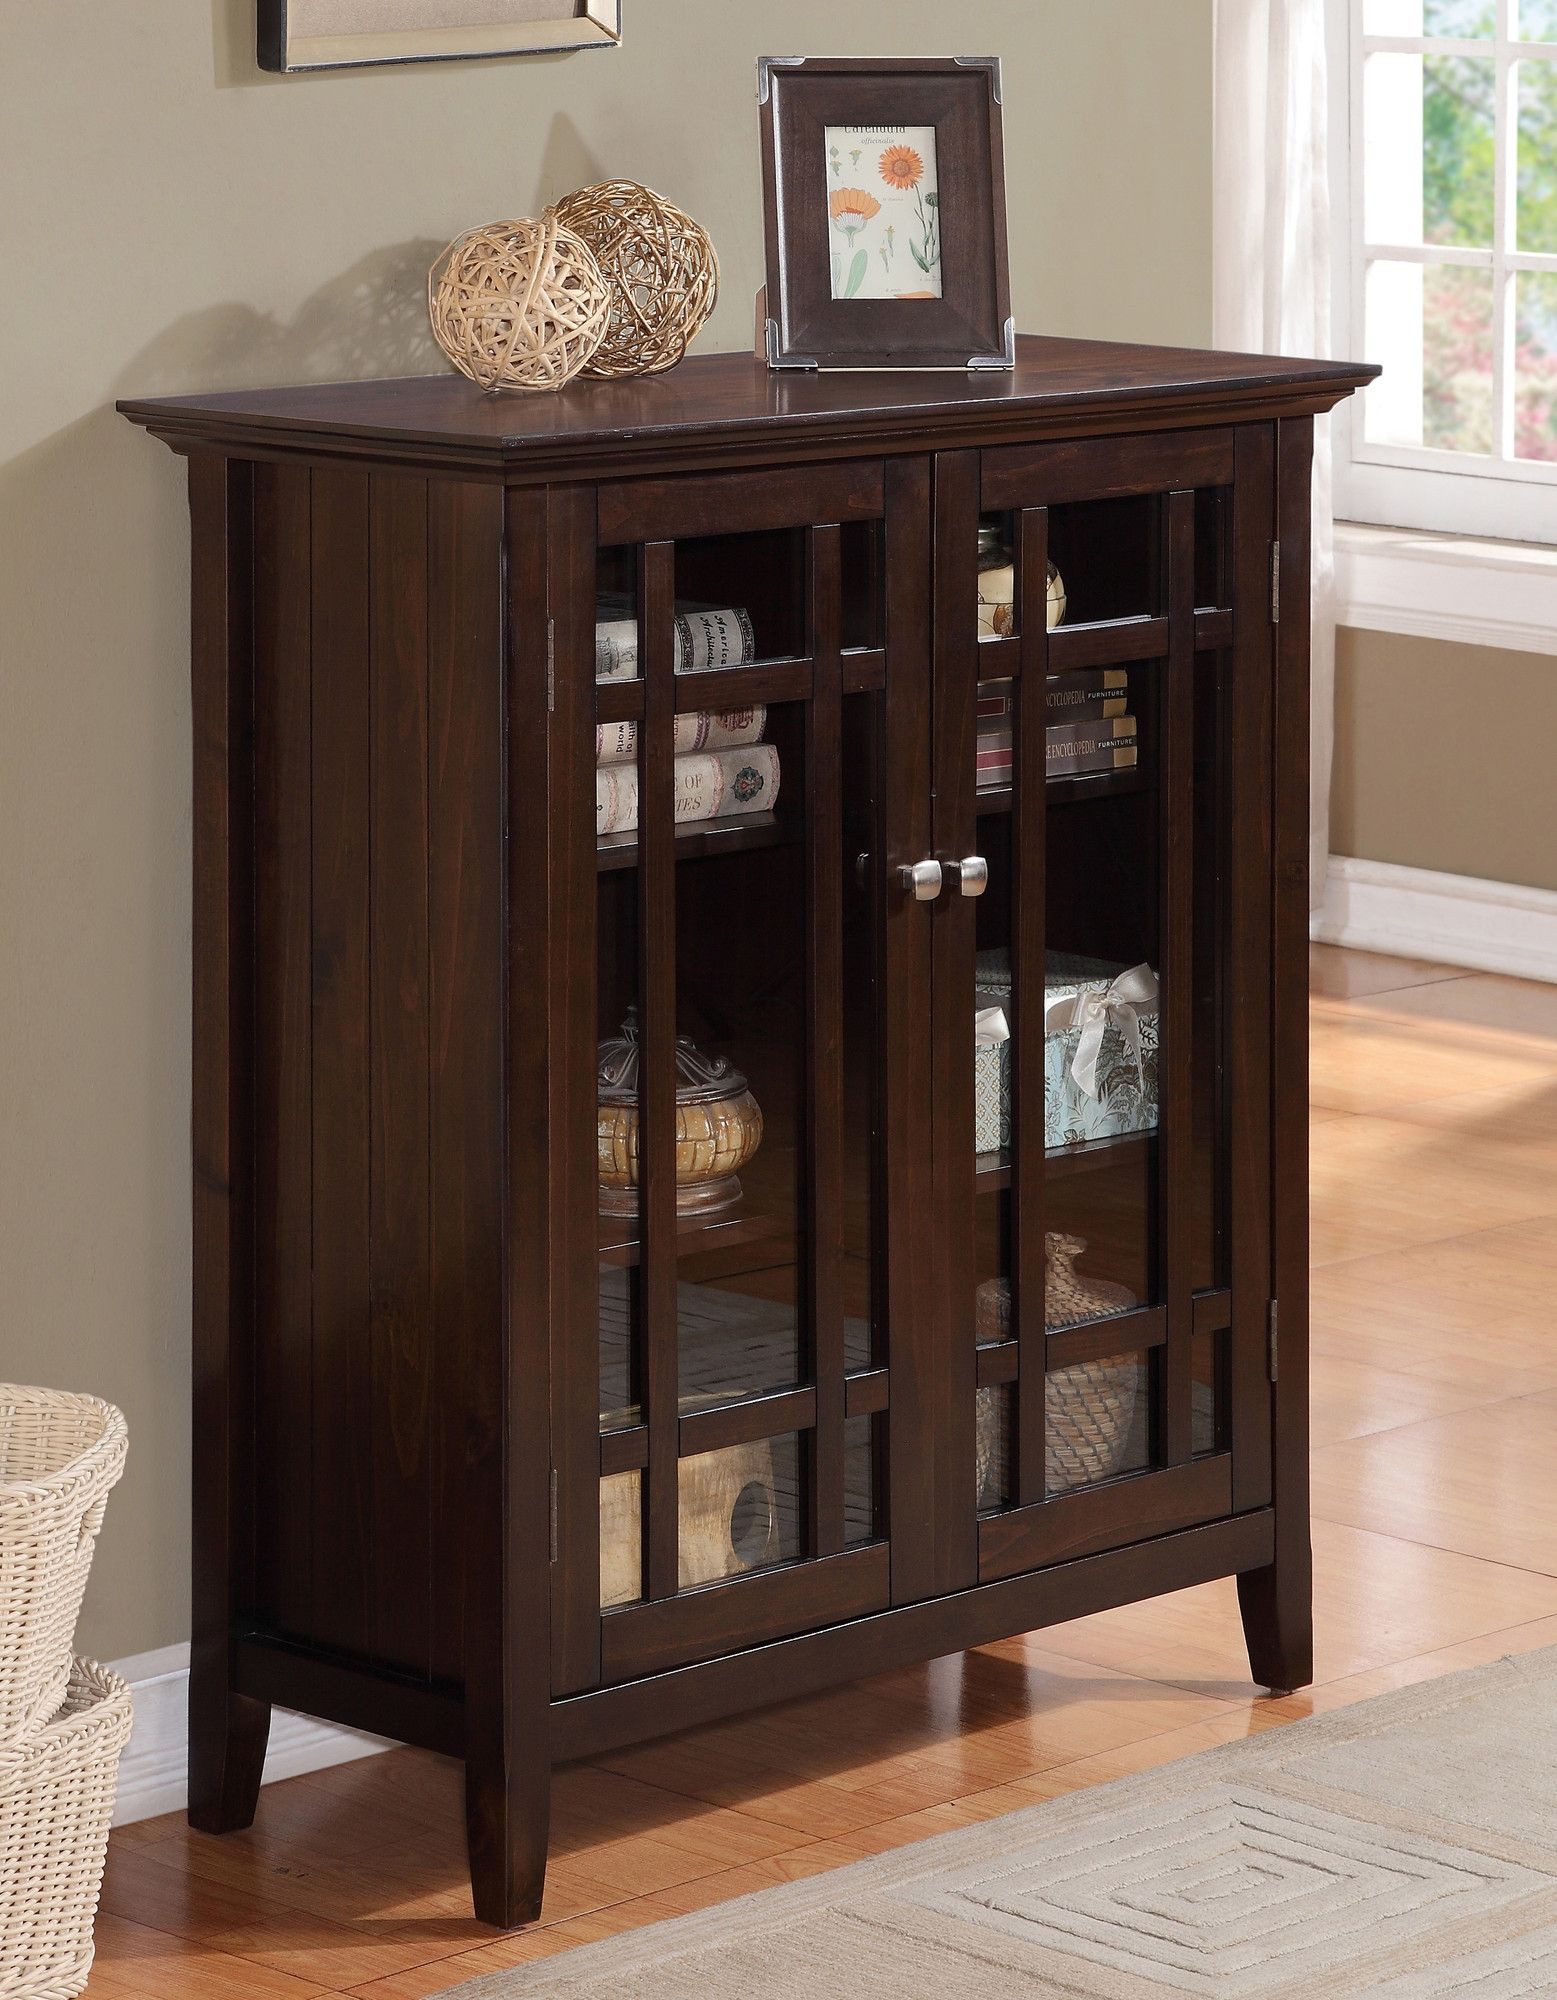 mirrored accent cabinet lovely night stands kitchen fresh storage furniture luxury simpli home bedford media mackenzie table wicker file best awesome tar design ideas modern